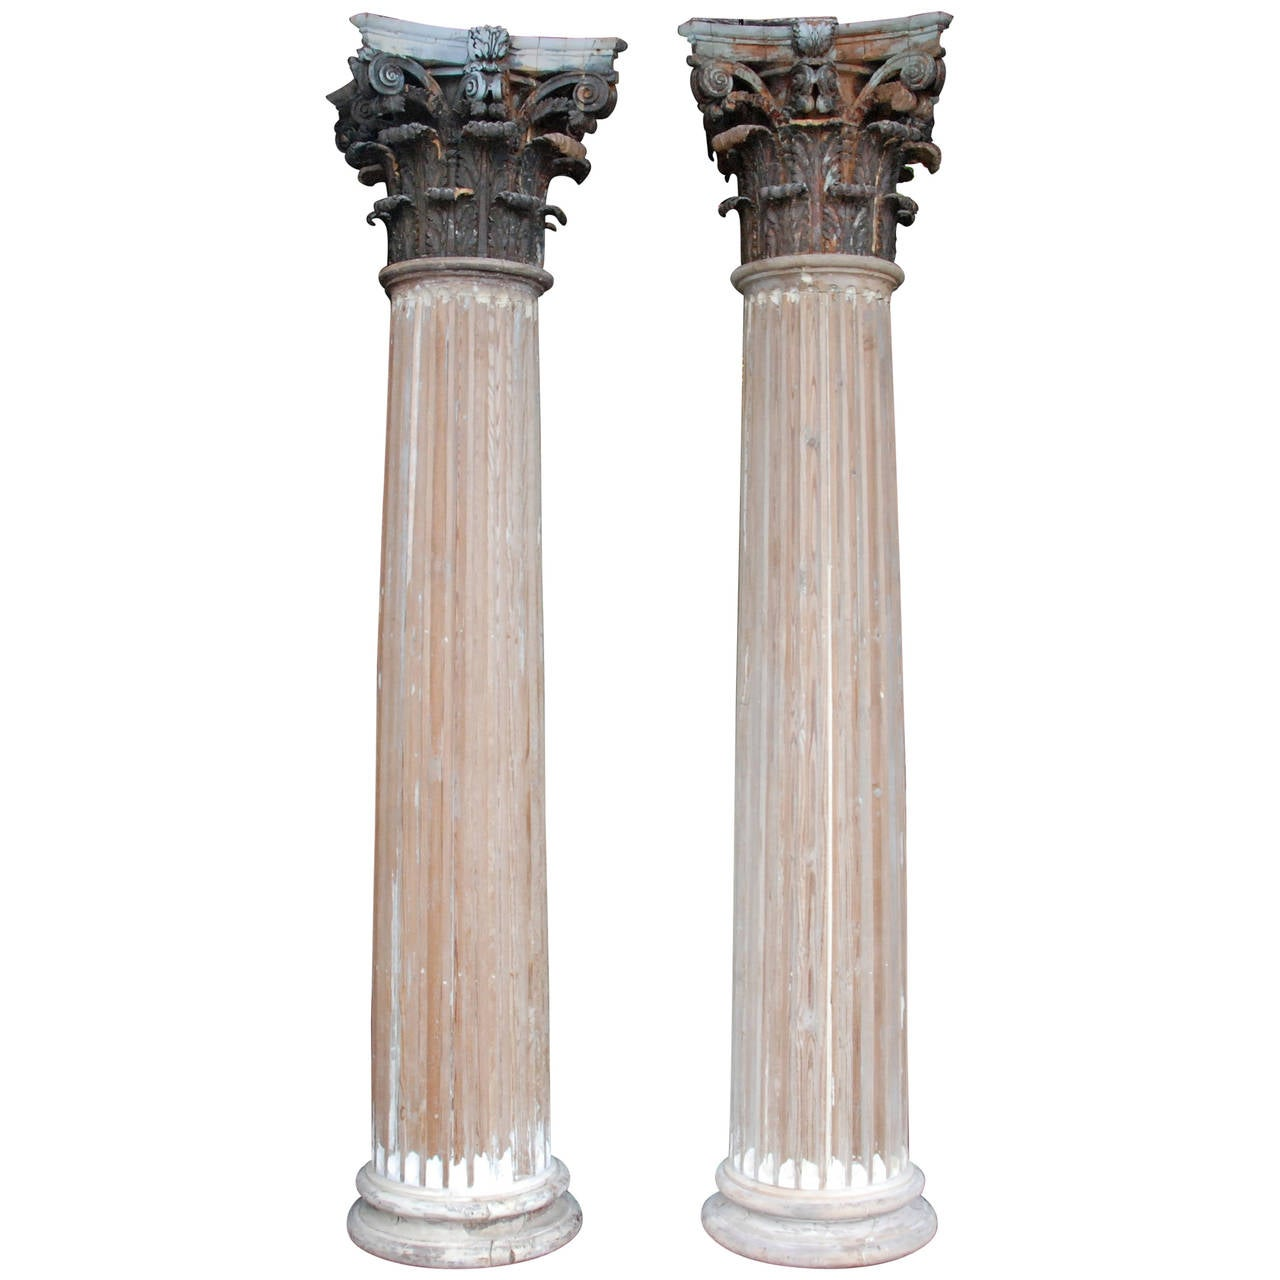 Build Wood Columns : Pair of th century wood columns for sale at stdibs